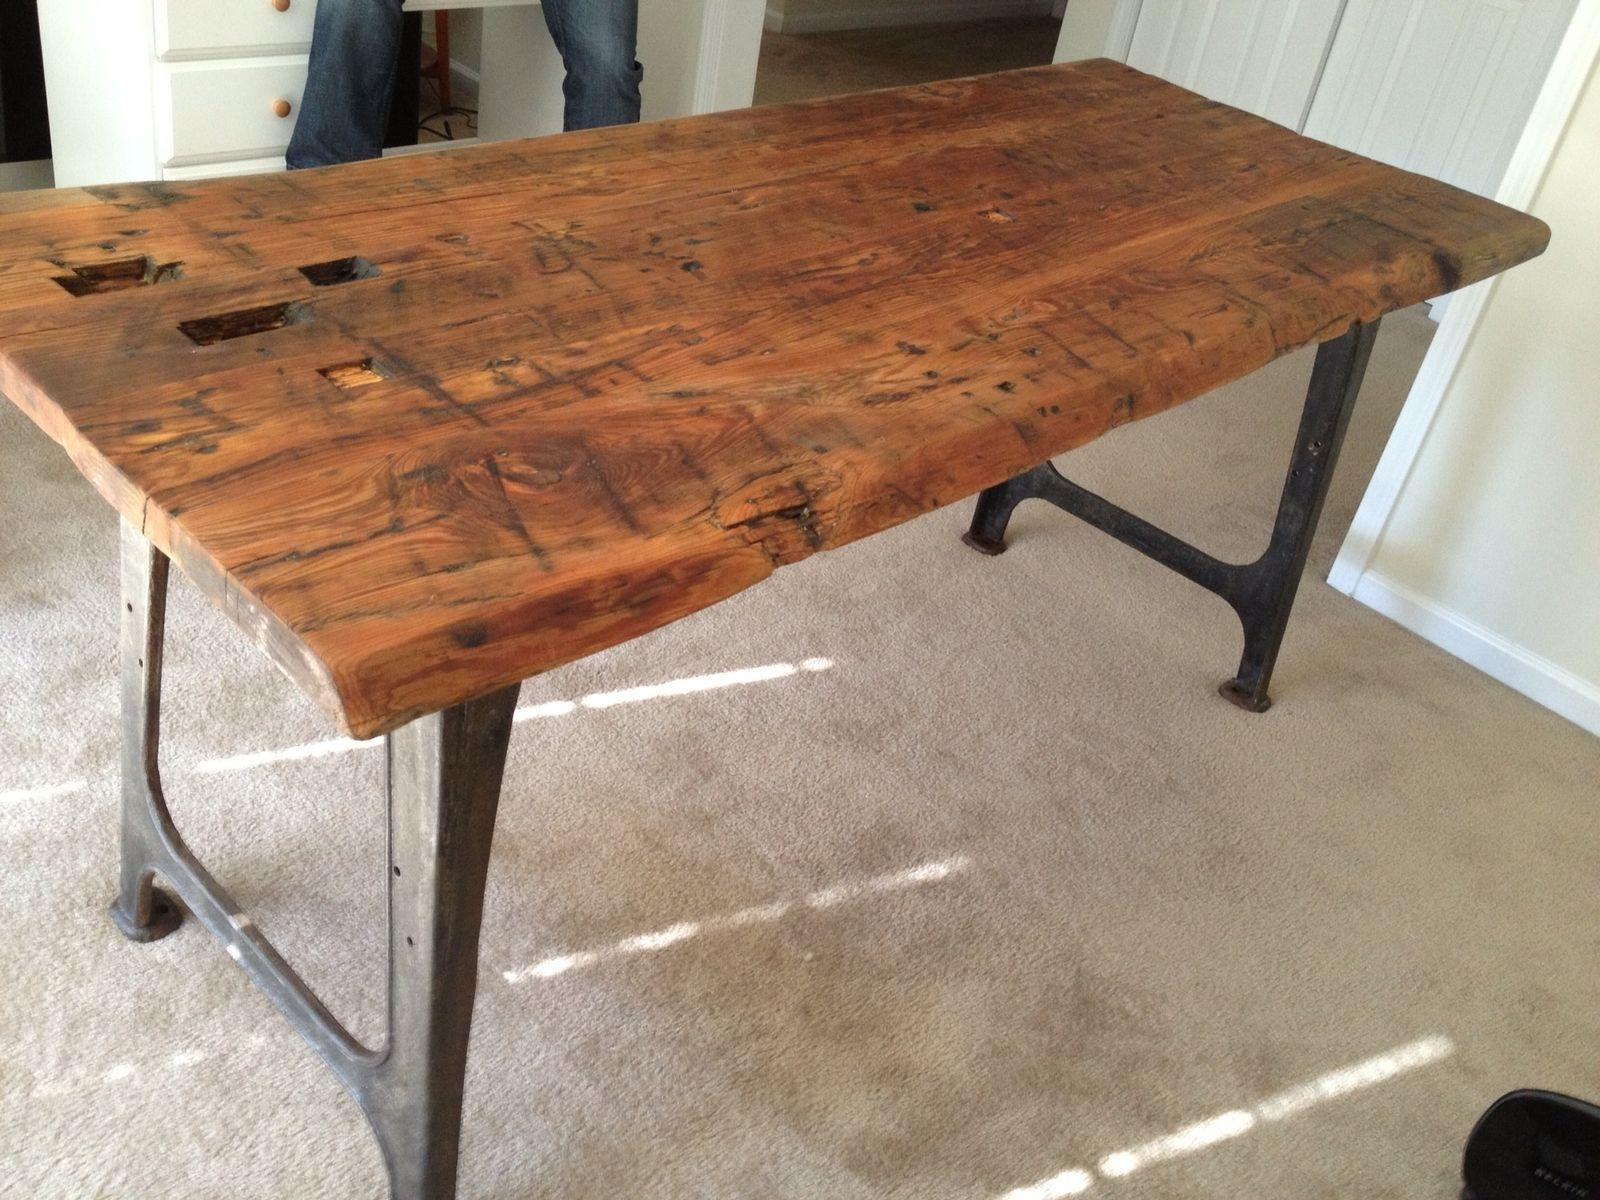 Custom Made Reclaimed Machine Leg Table. Hand Made Reclaimed Machine Leg Table by Elias Custom Furniture